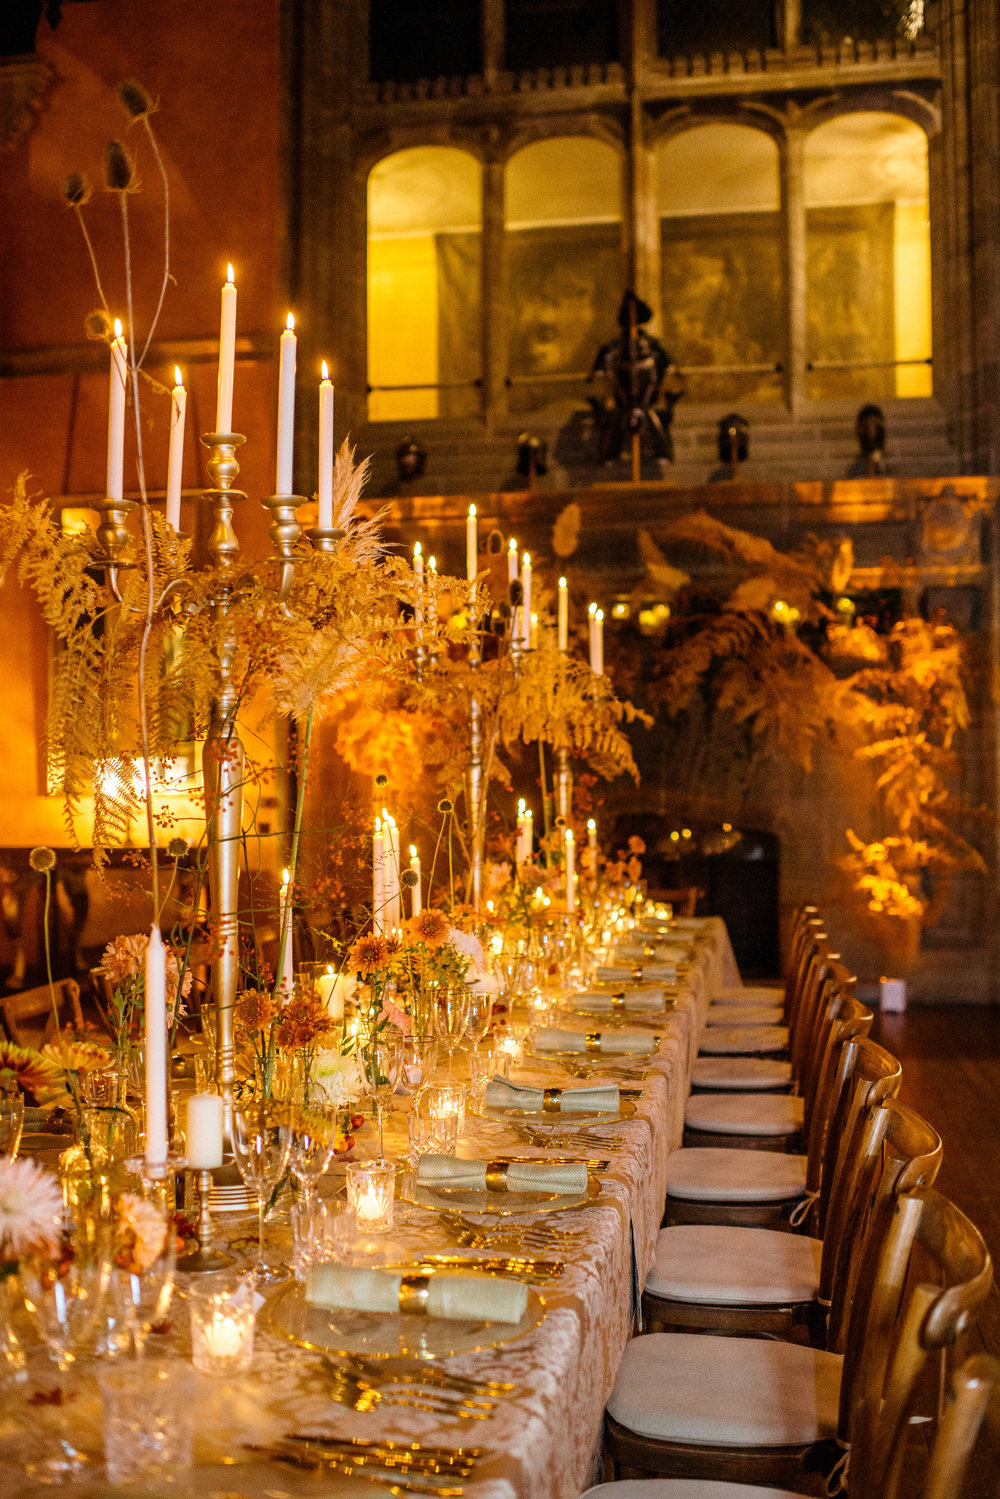 Candelabra with bracken Autumn Dinner Cowdray House